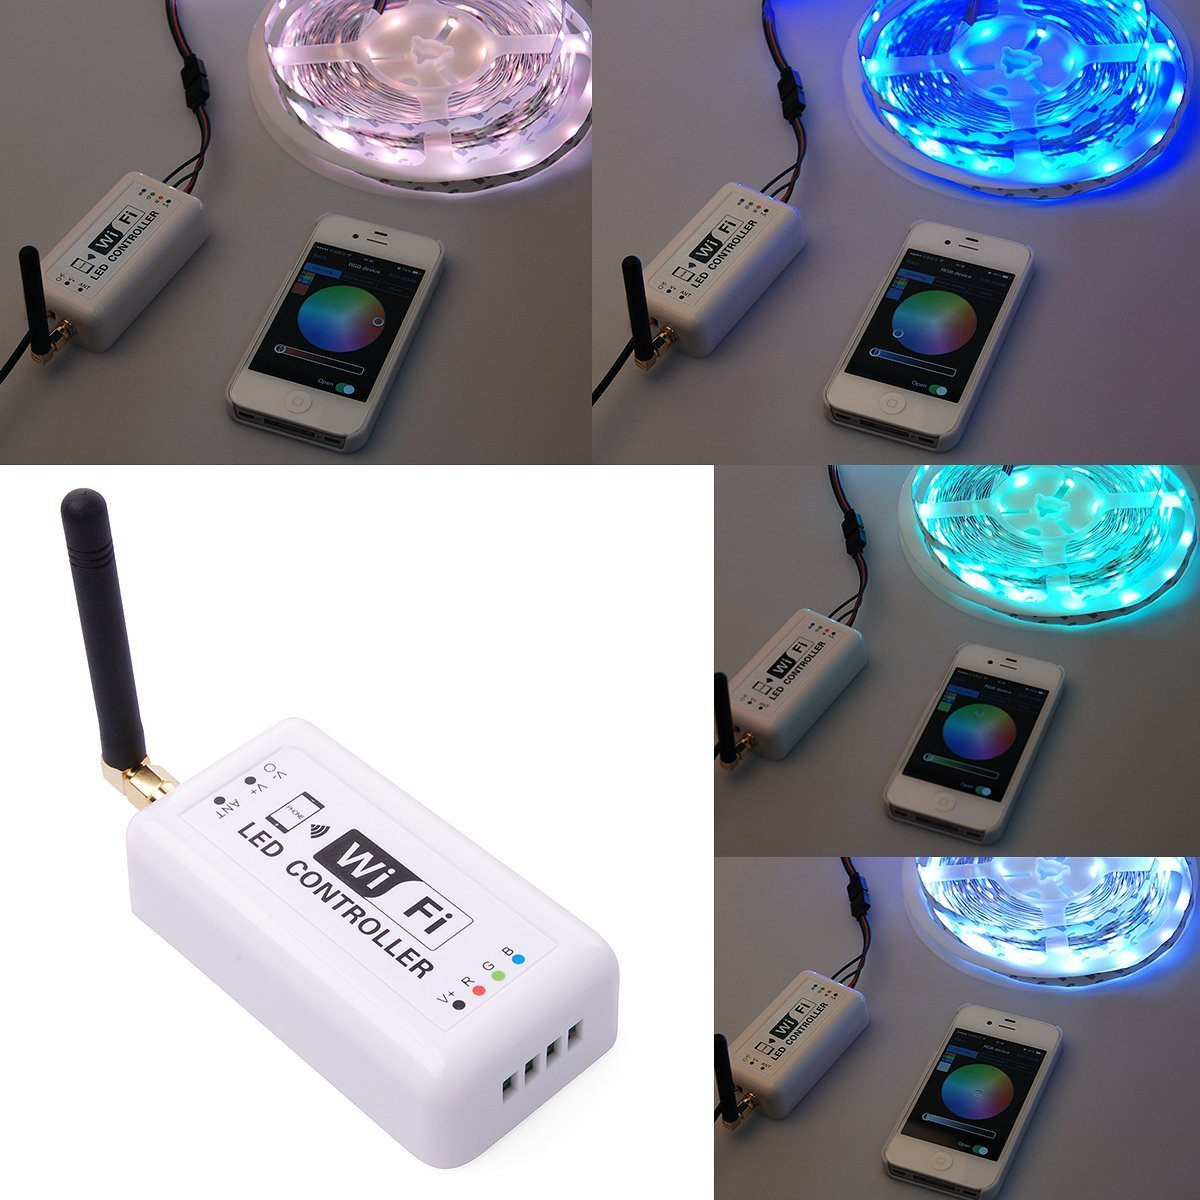 Estone Mobile Phone Smartphone Android Wireless WiFi RGB LED Controller For LED Strip